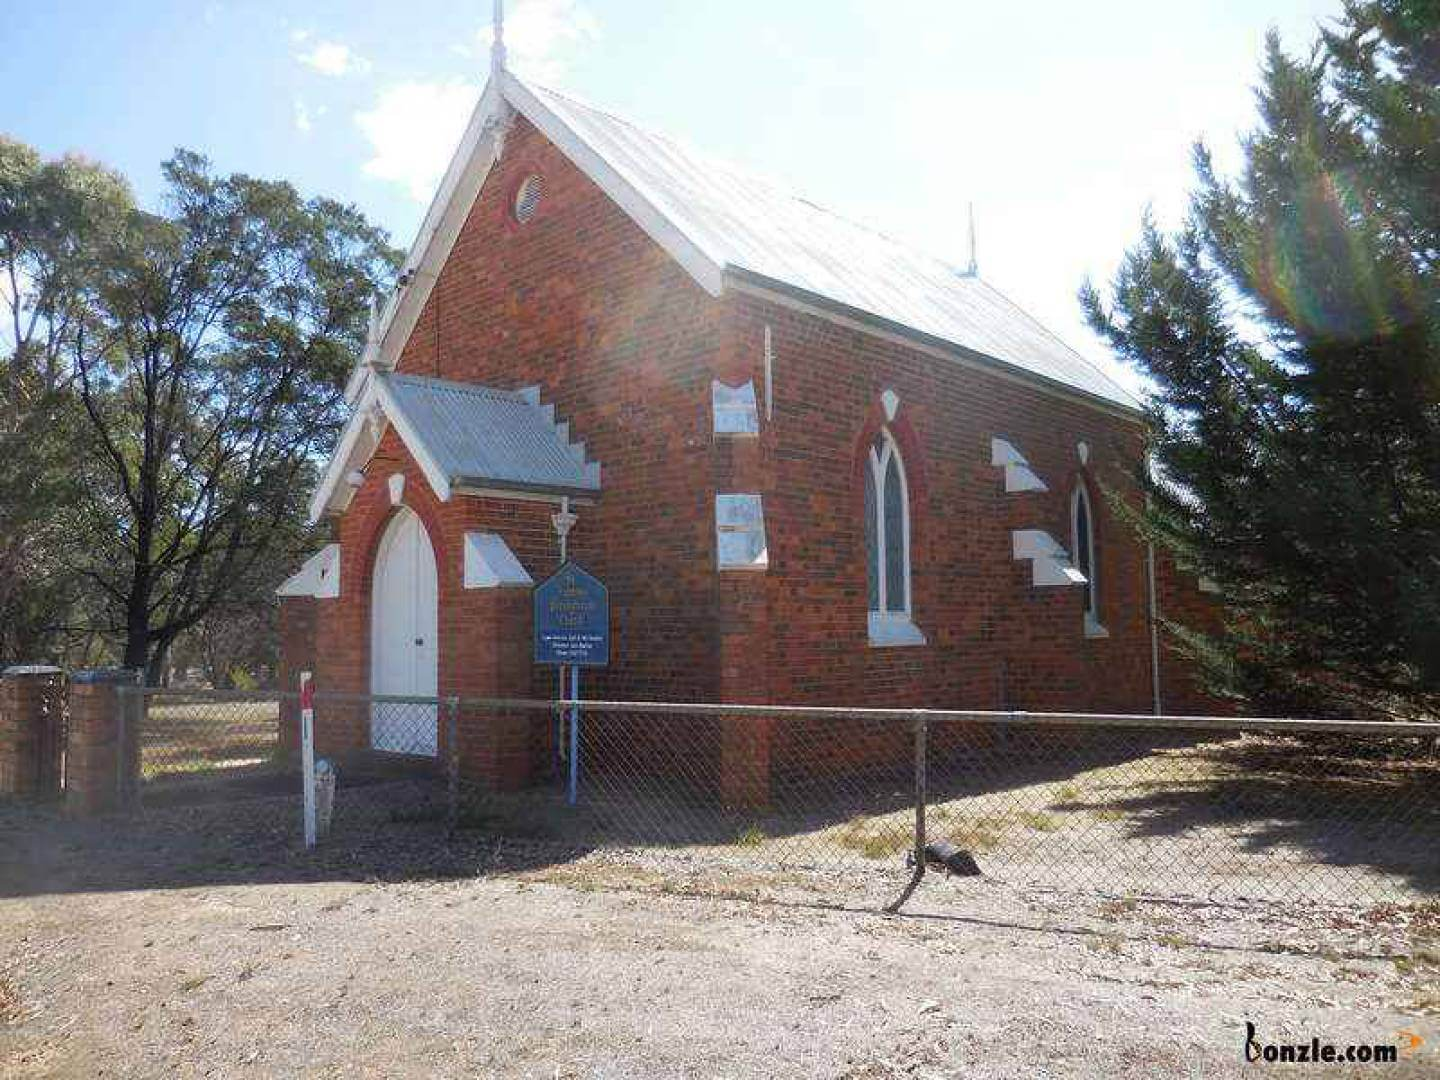 Lexton Presbyterian Church